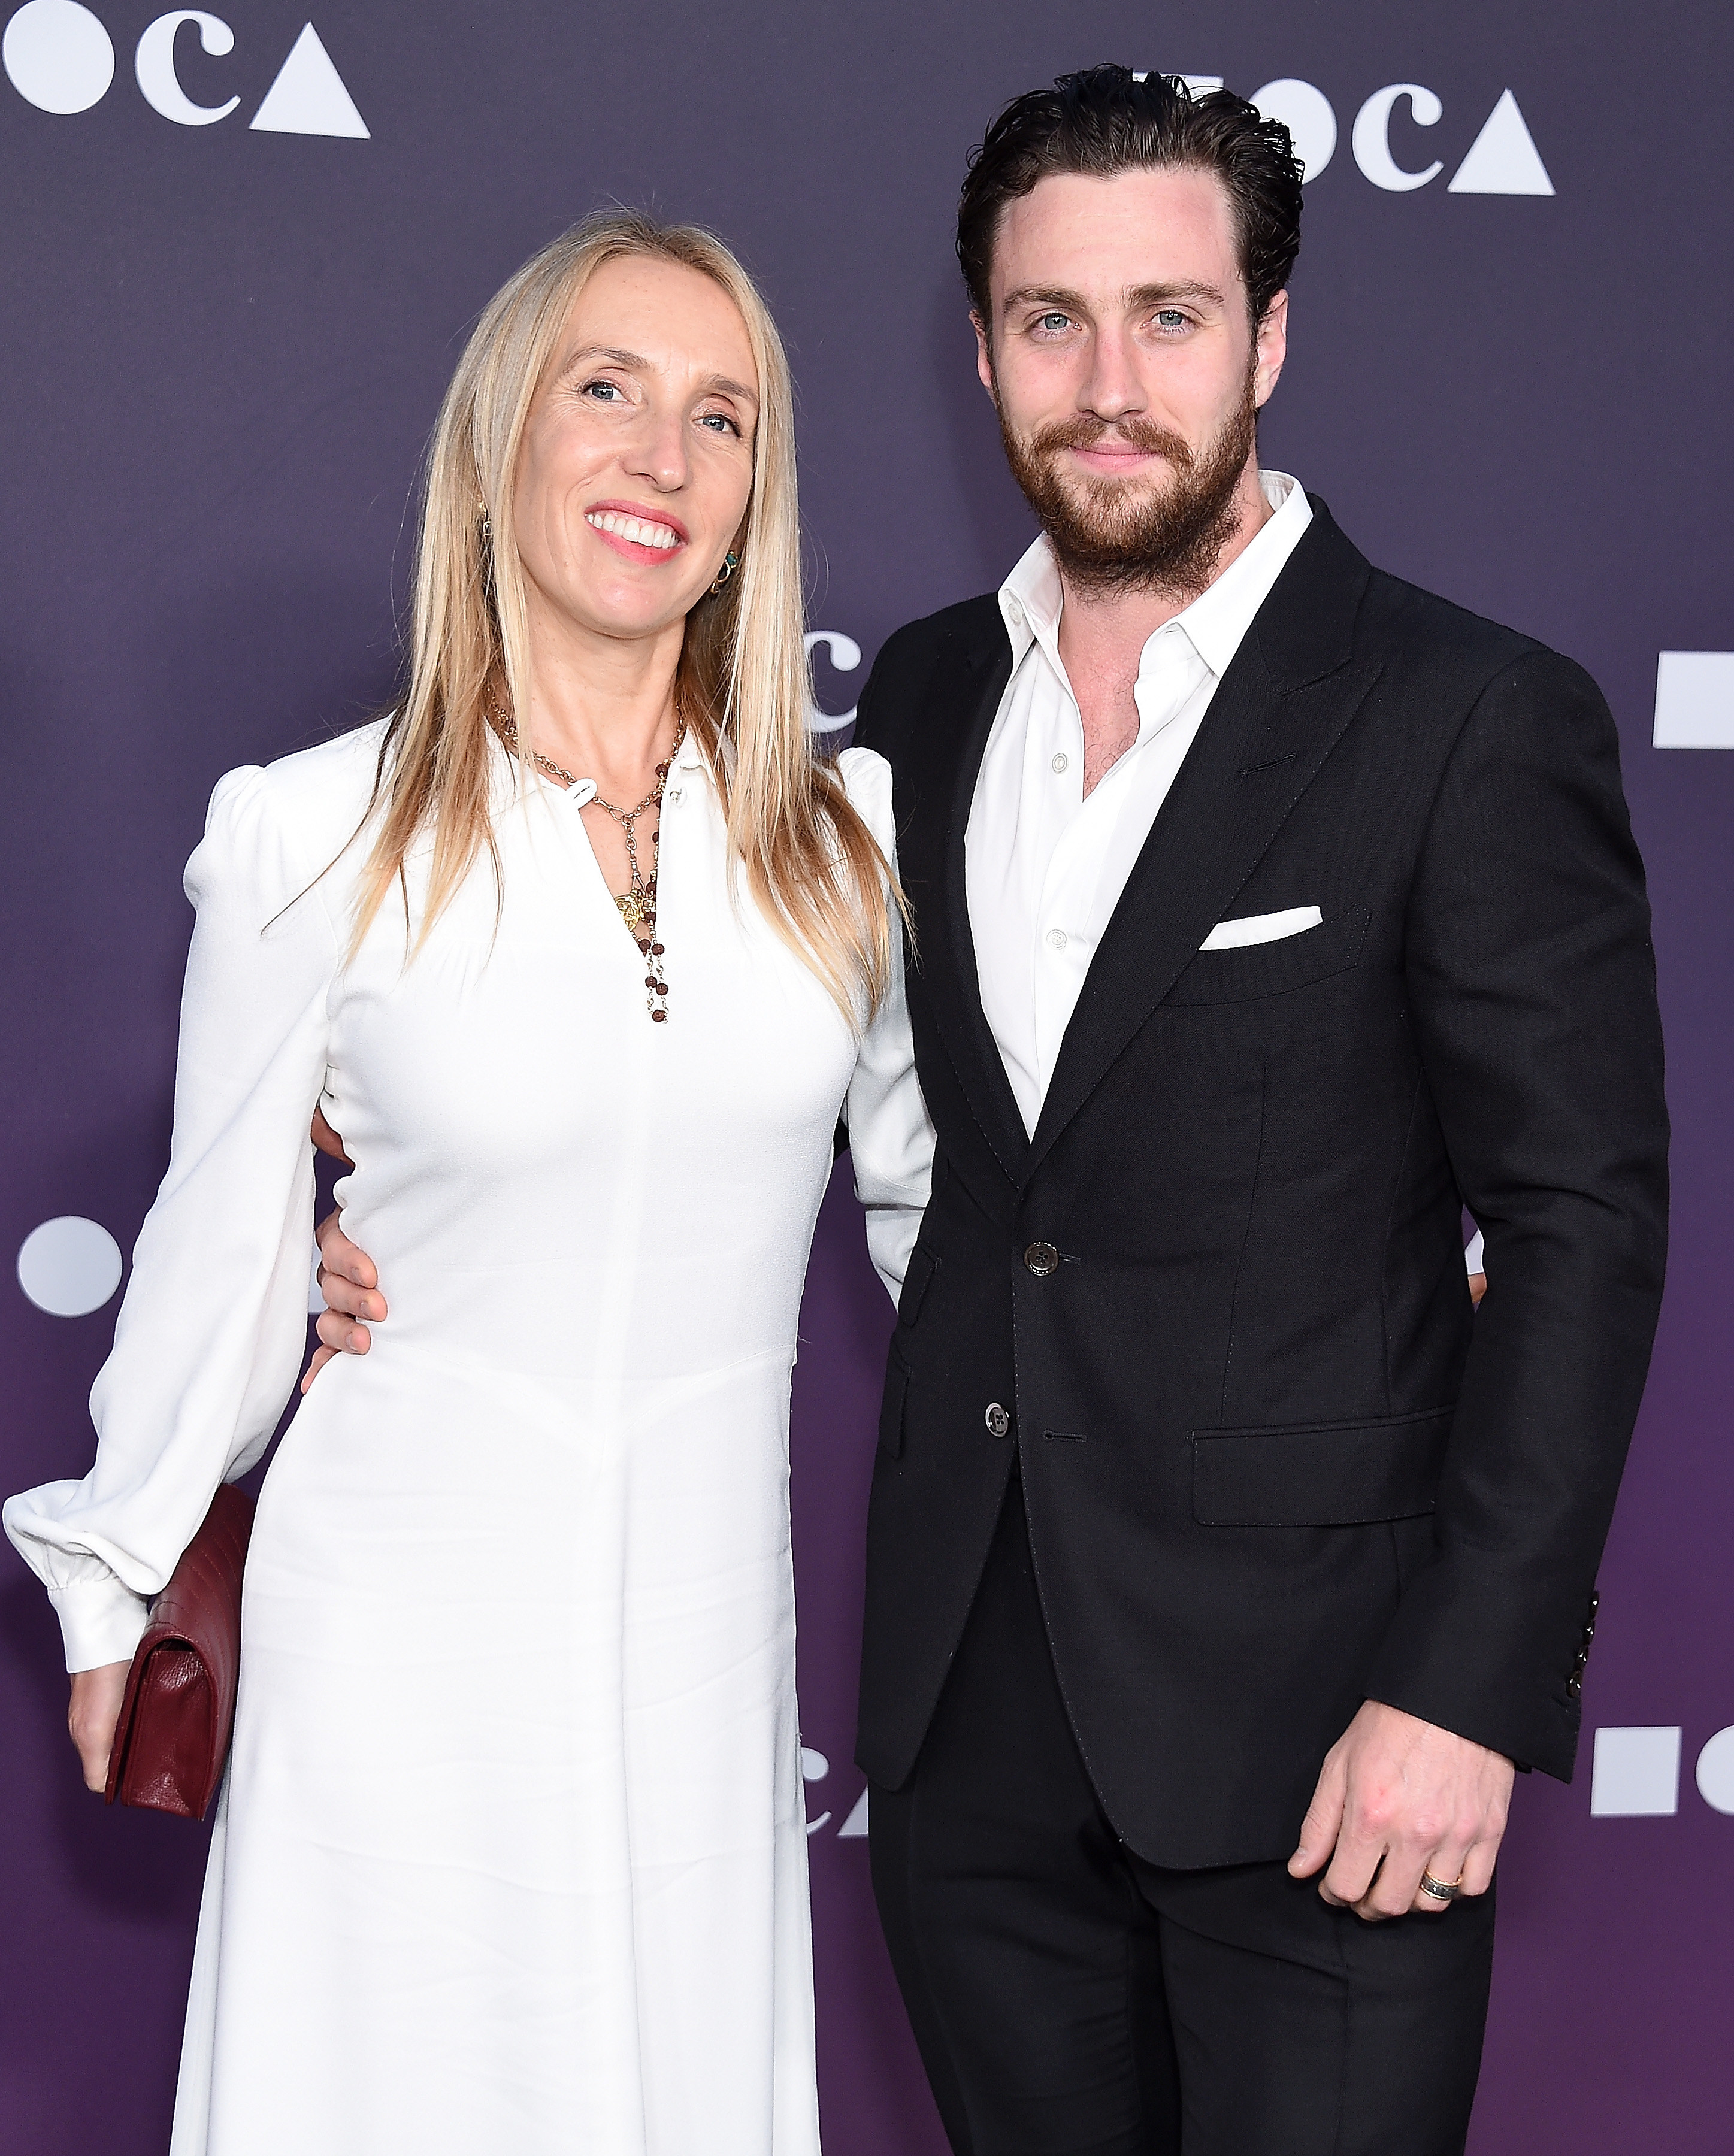 Sam Taylor-Johnson and Aaron Taylor-Johnson smile arm in arm at a film premiere